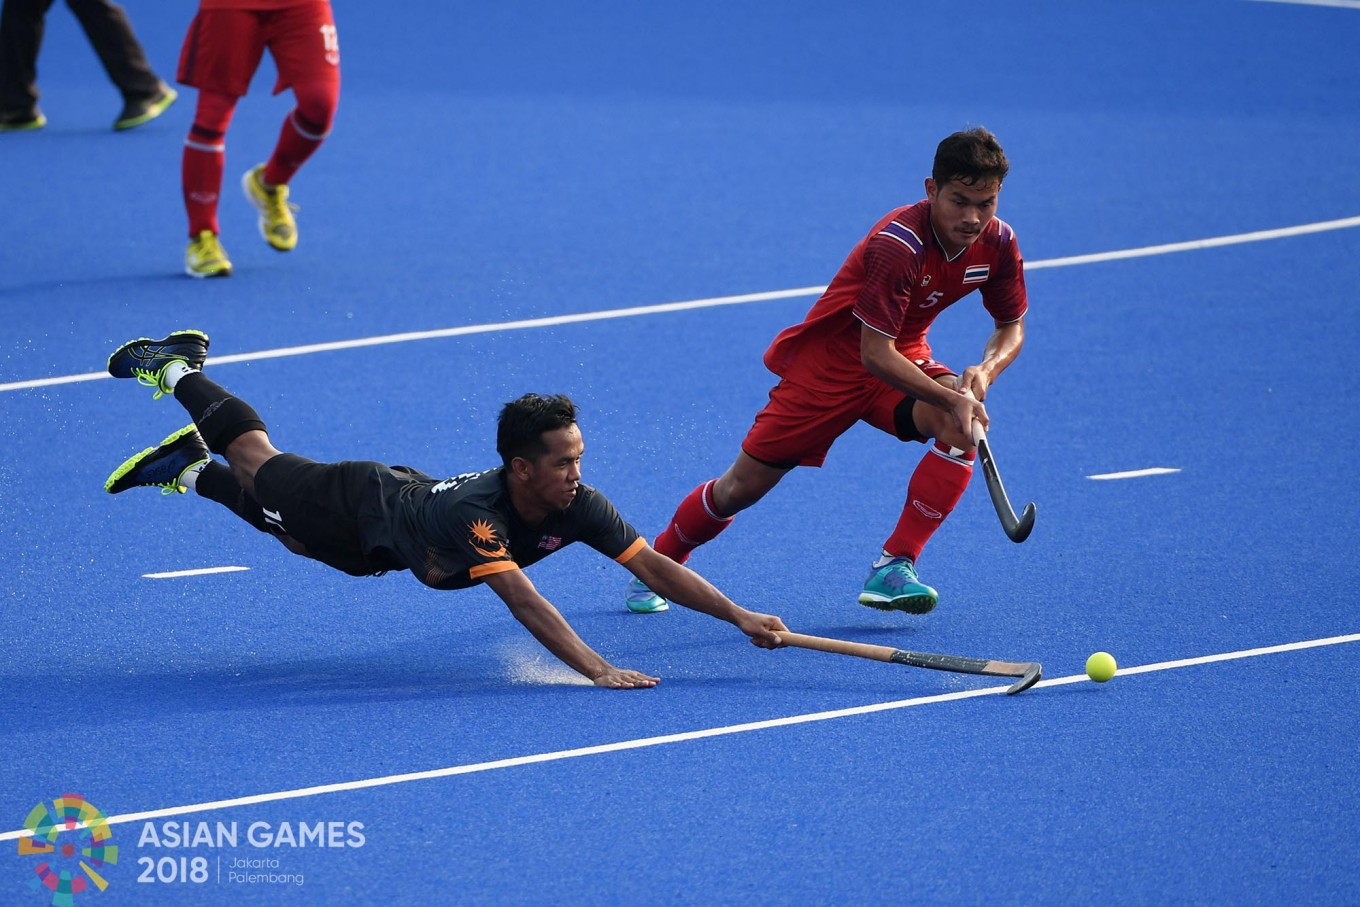 Malaysia's Faizal Saari (L) and Thailand's Boonmee (R) fight for the ball during the men's hockey pool B match between Malaysia and Thailand at the 2018 Asian Games in Jakarta on August. 22.Inasgoc via Antara/ Dhoni Setiawan